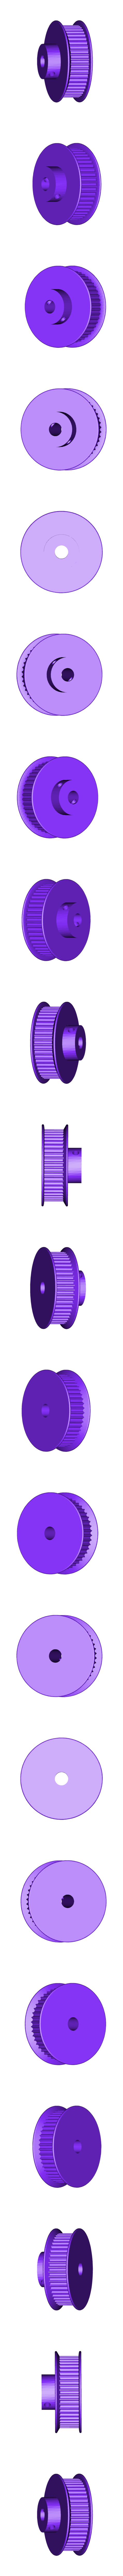 OpenRC_F1_250scaled_-_74347-1.STL Download free STL file OpenRC F1 250% scaled • Template to 3D print, colorFabb